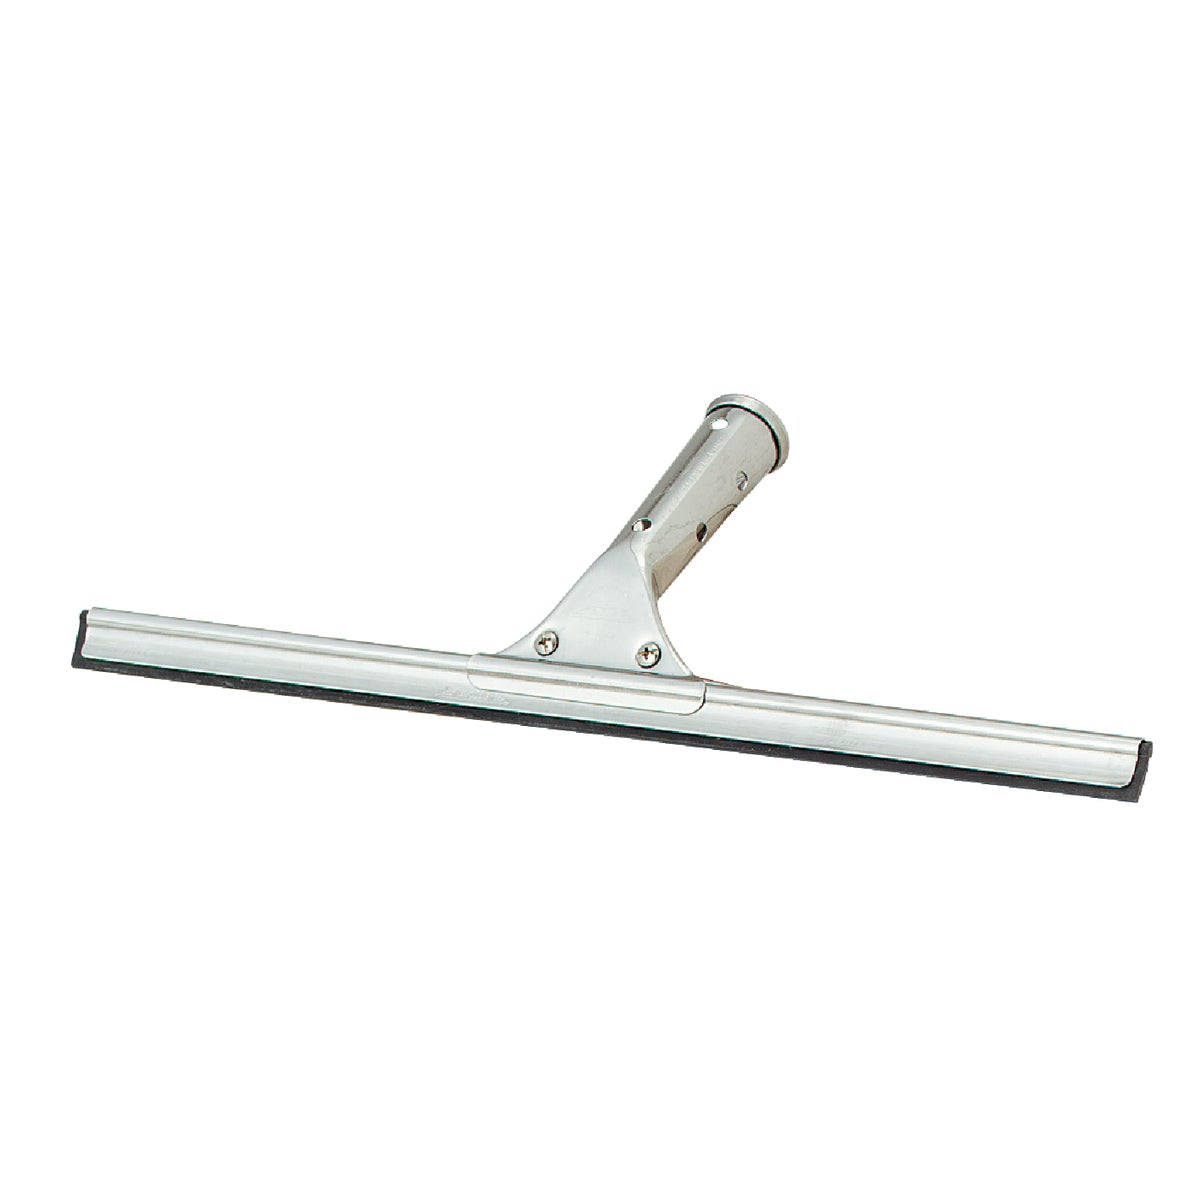 "16"" ORIGINAL SQUEEGEE - 11116 by Ettore Products Co"